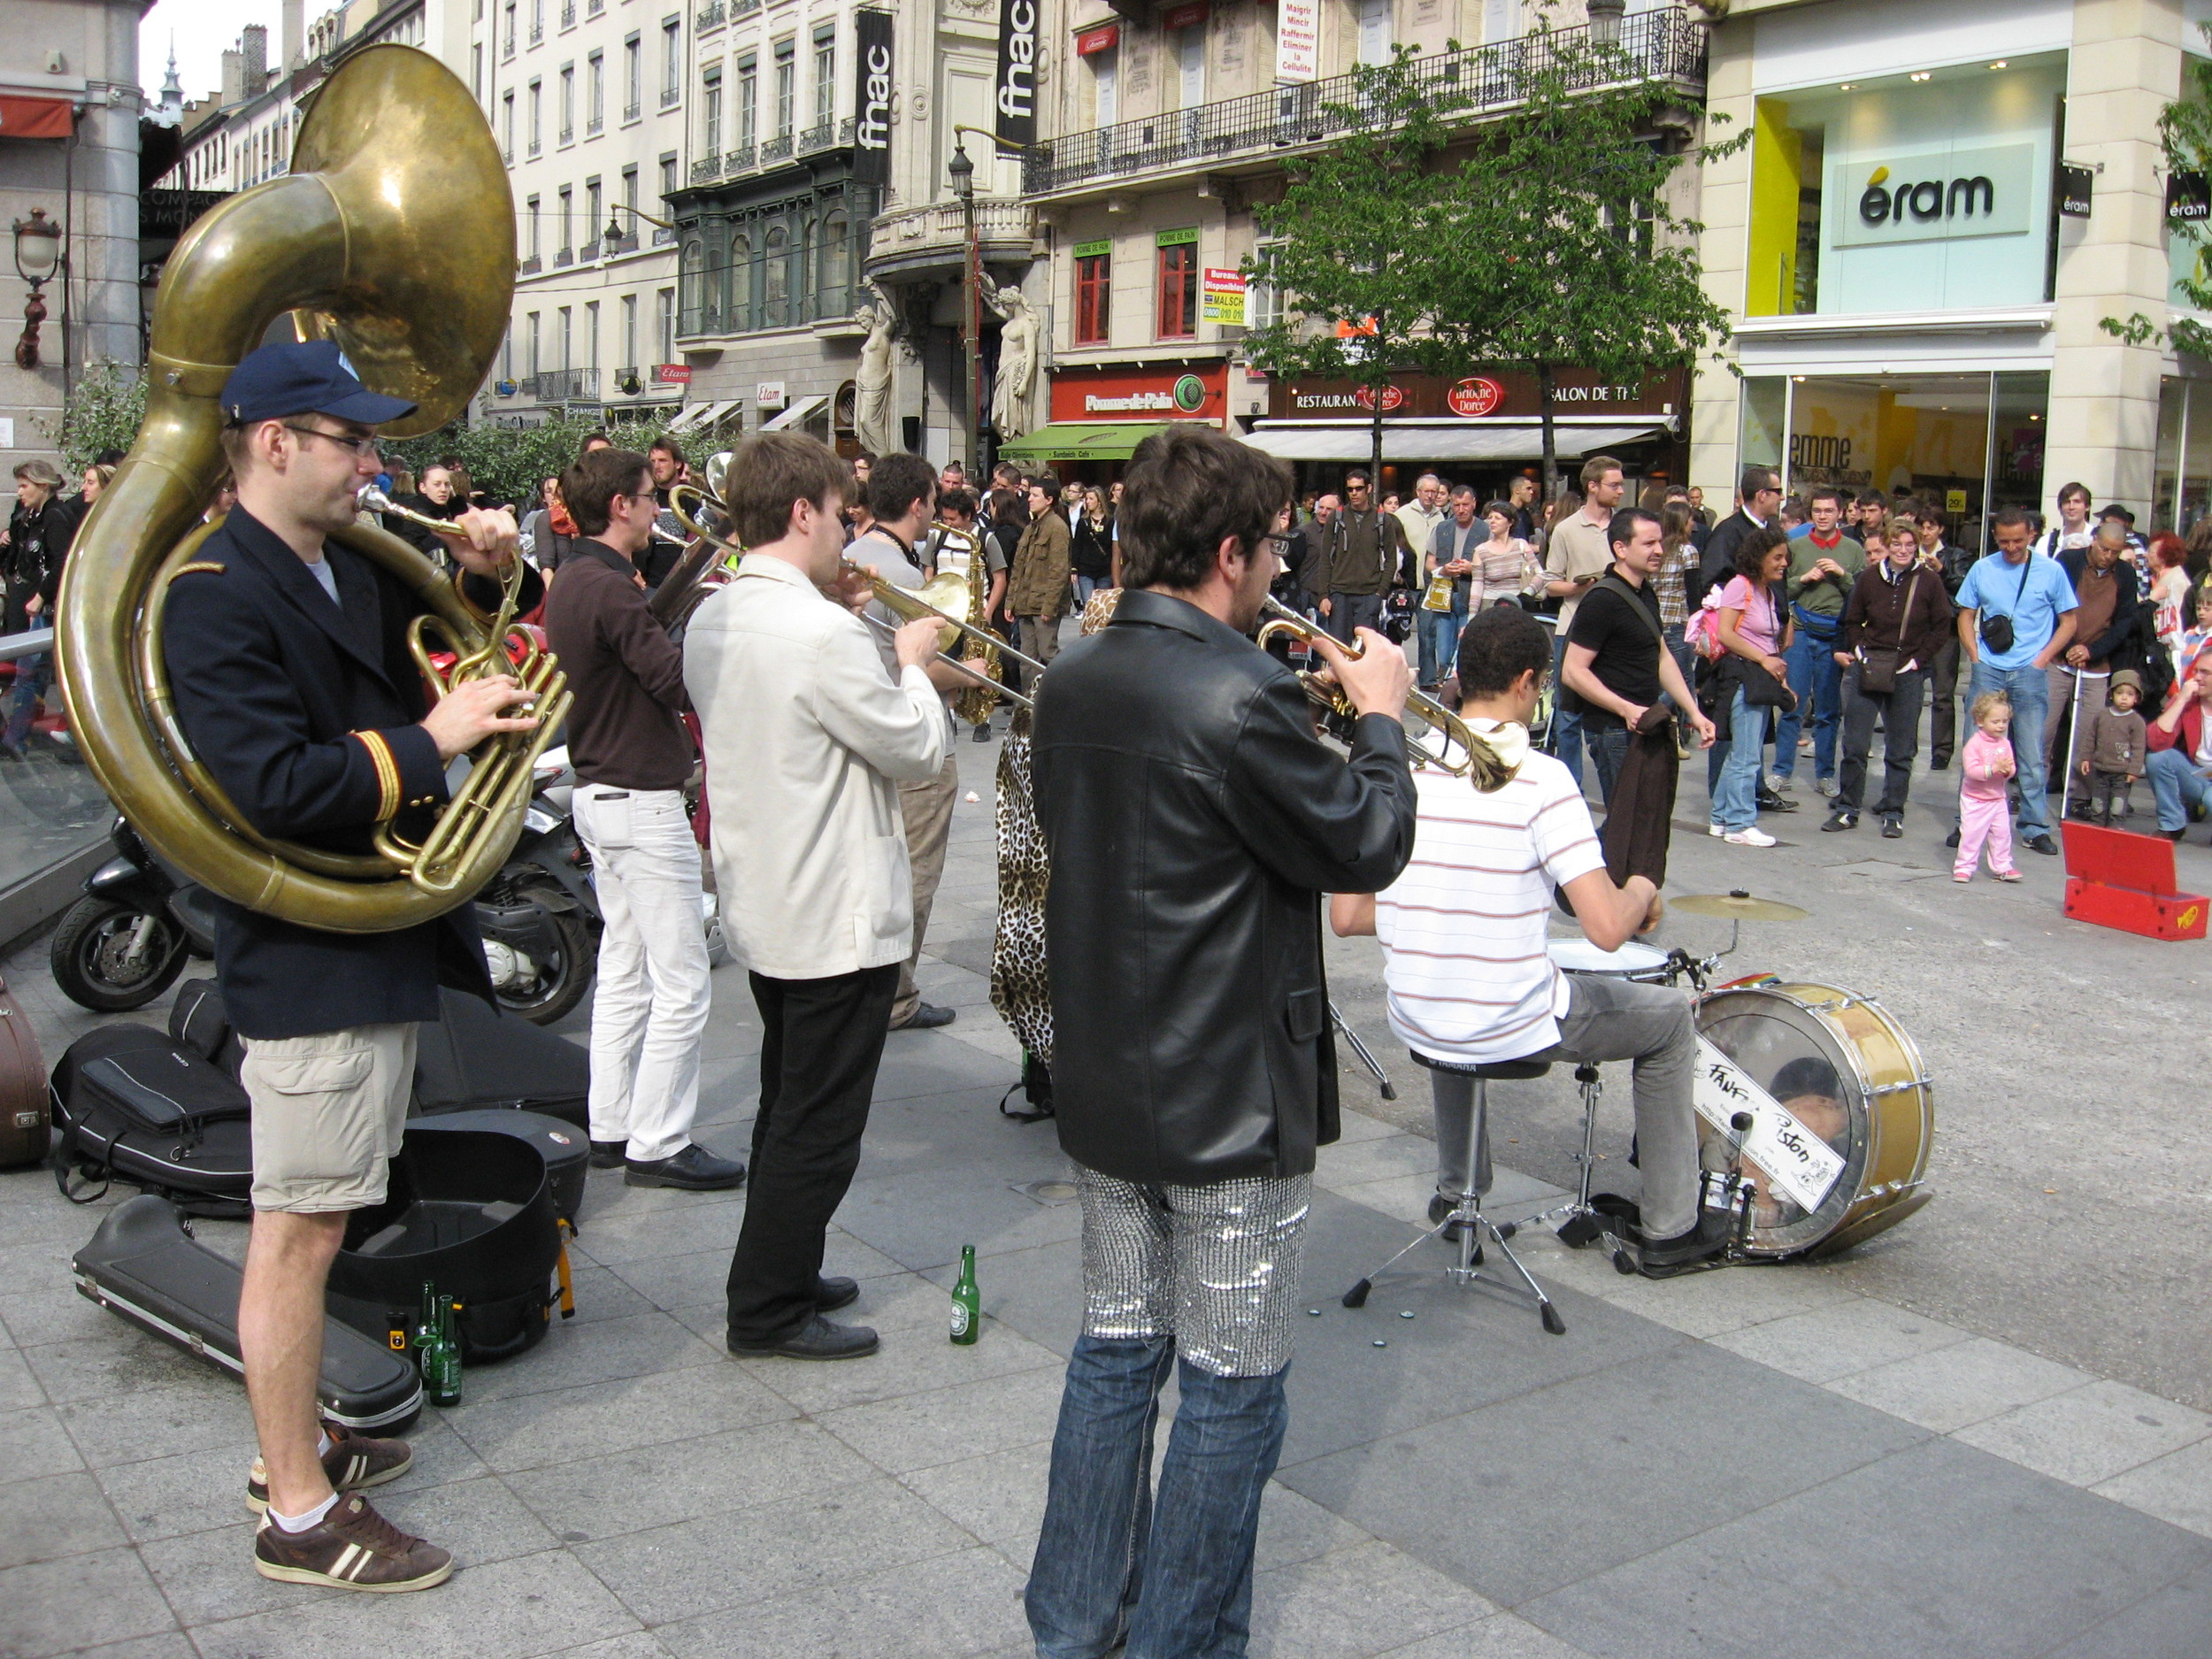 Great streets are full of surprises. We found this band busking late one afternoon and you could just feel everyone stop and enjoy the moment.